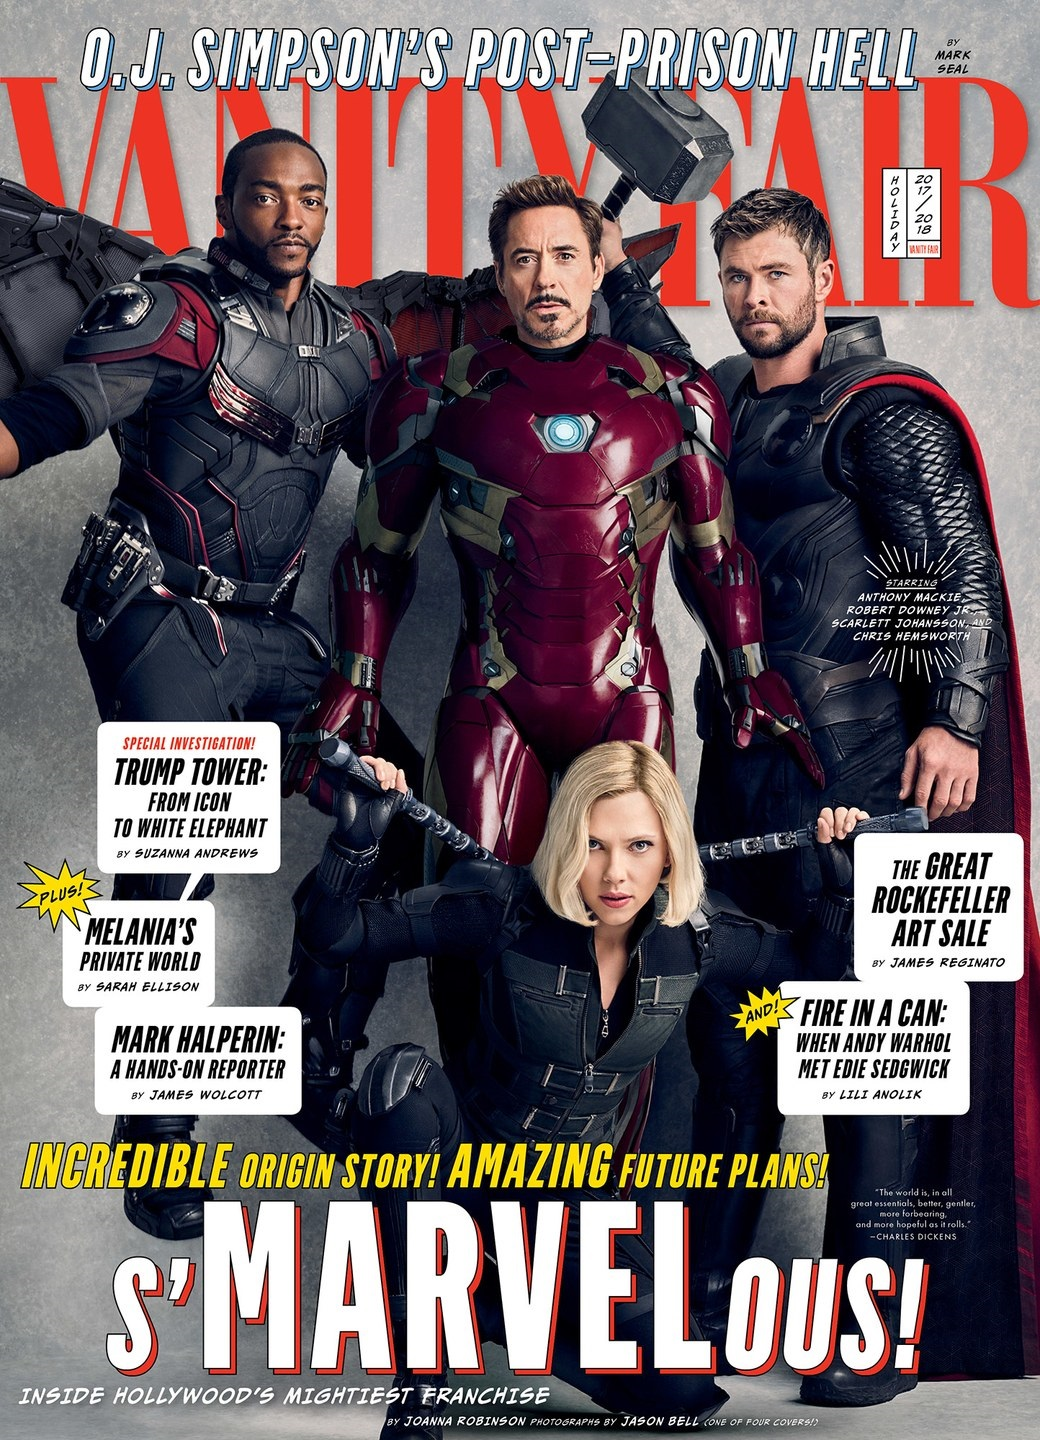 Cover featuring Avengers: Infinity War characters Iron Man, Thor, Falcon and Black Widow